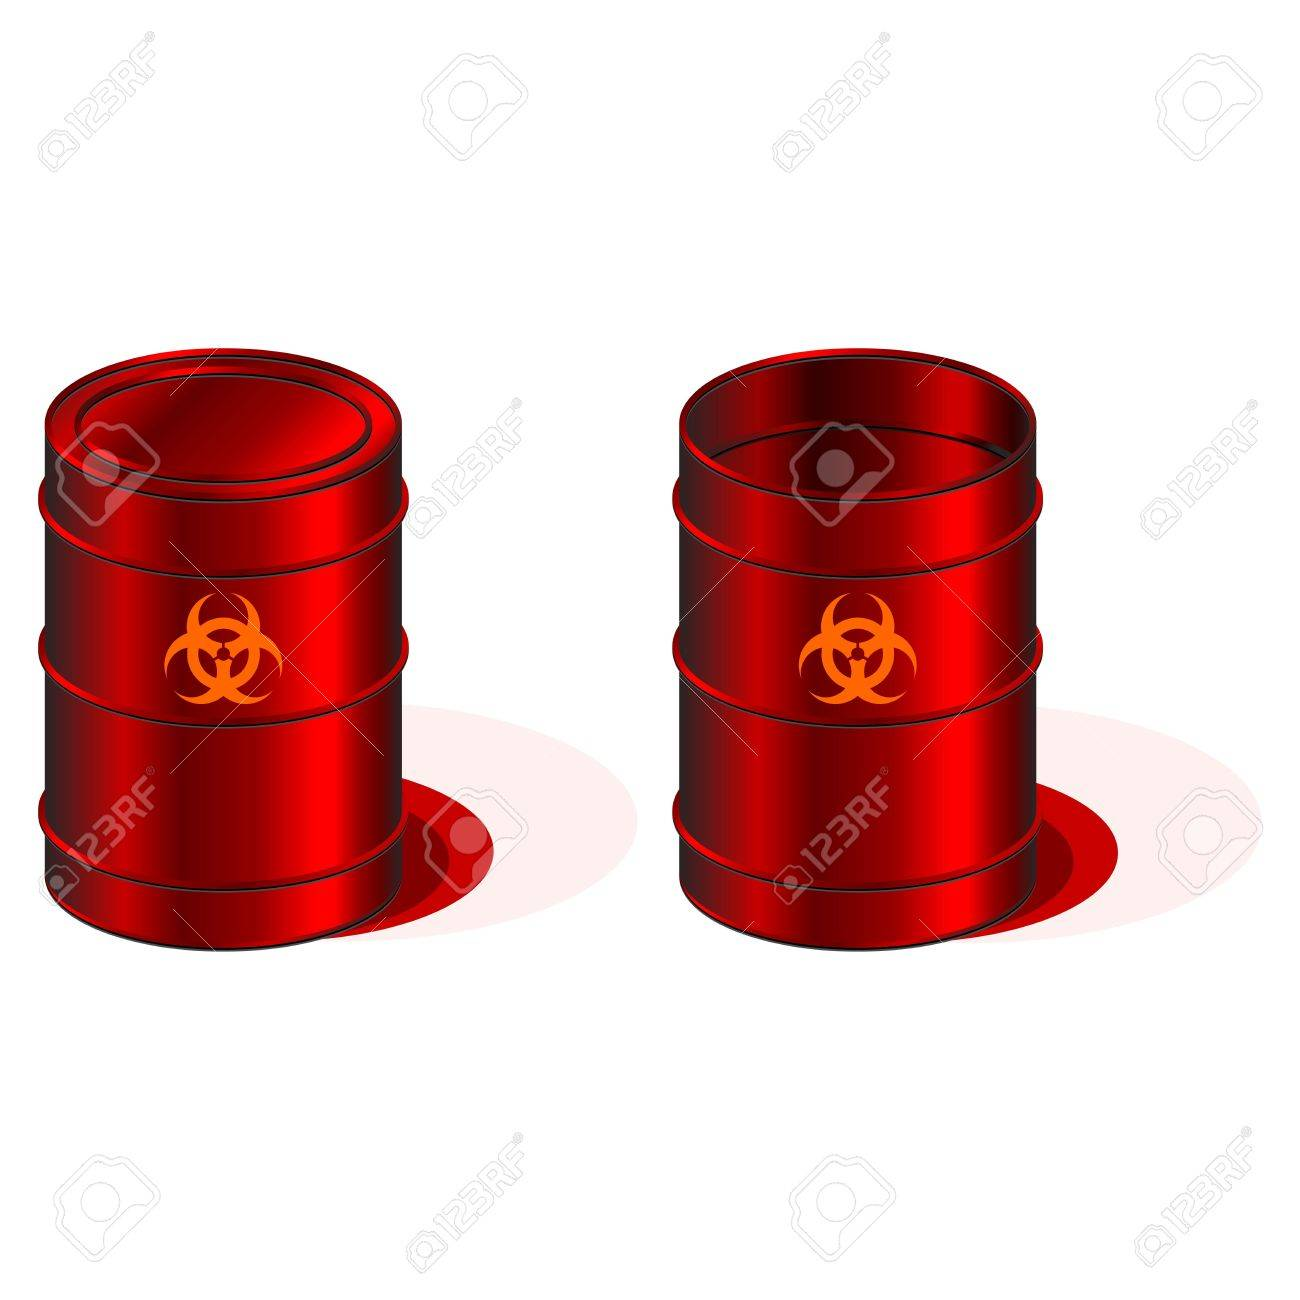 Open and closed barrels with biohazard symbol Stock Photo - 2946600